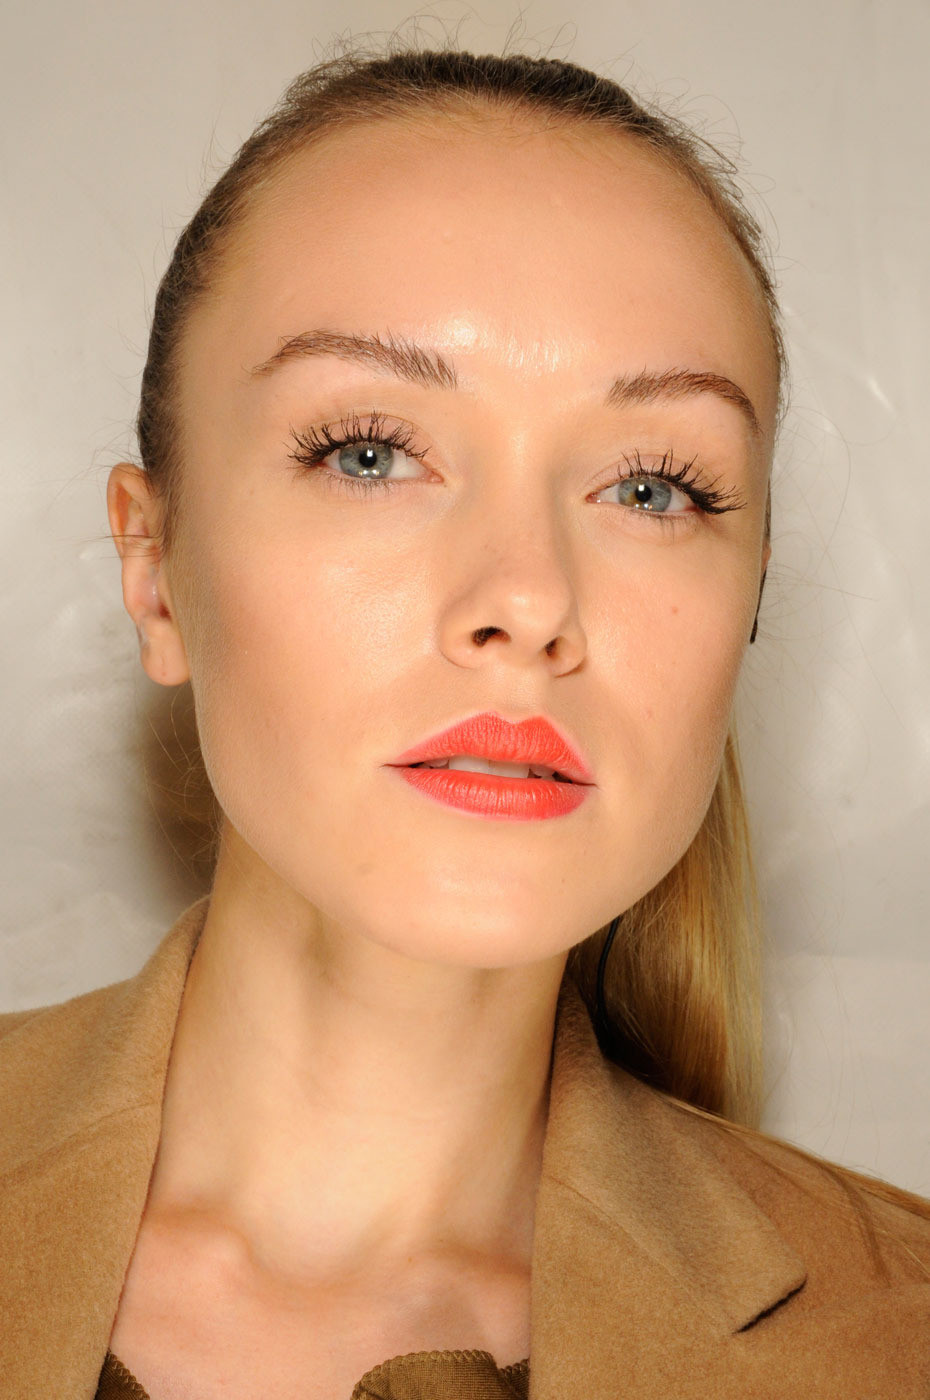 ksenia sukhinova dating She is also a former miss missouri and competed in the miss america pageant she appeared on the 2013 television dating show ready for love miss usa 2004.